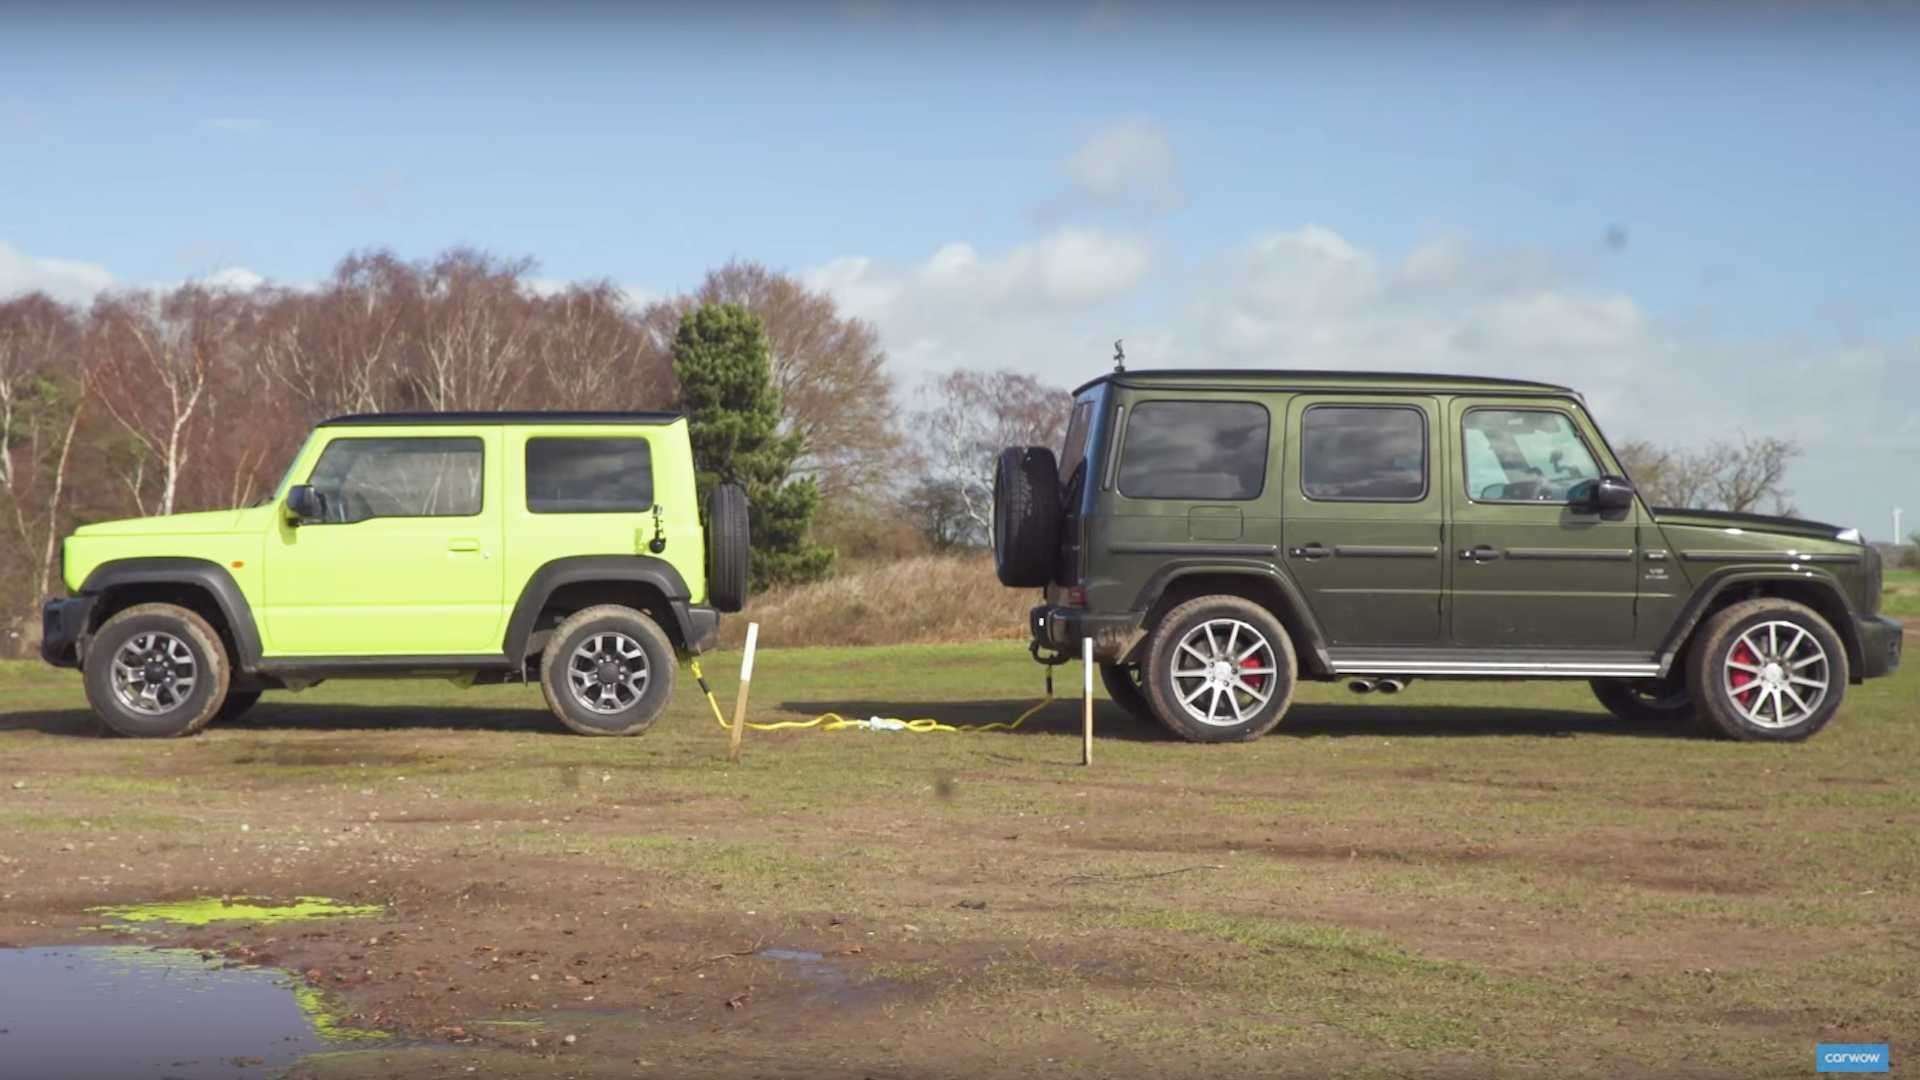 Mercedes Amg G63 Tug Of Wars Suzuki Jimny With Obvious Results